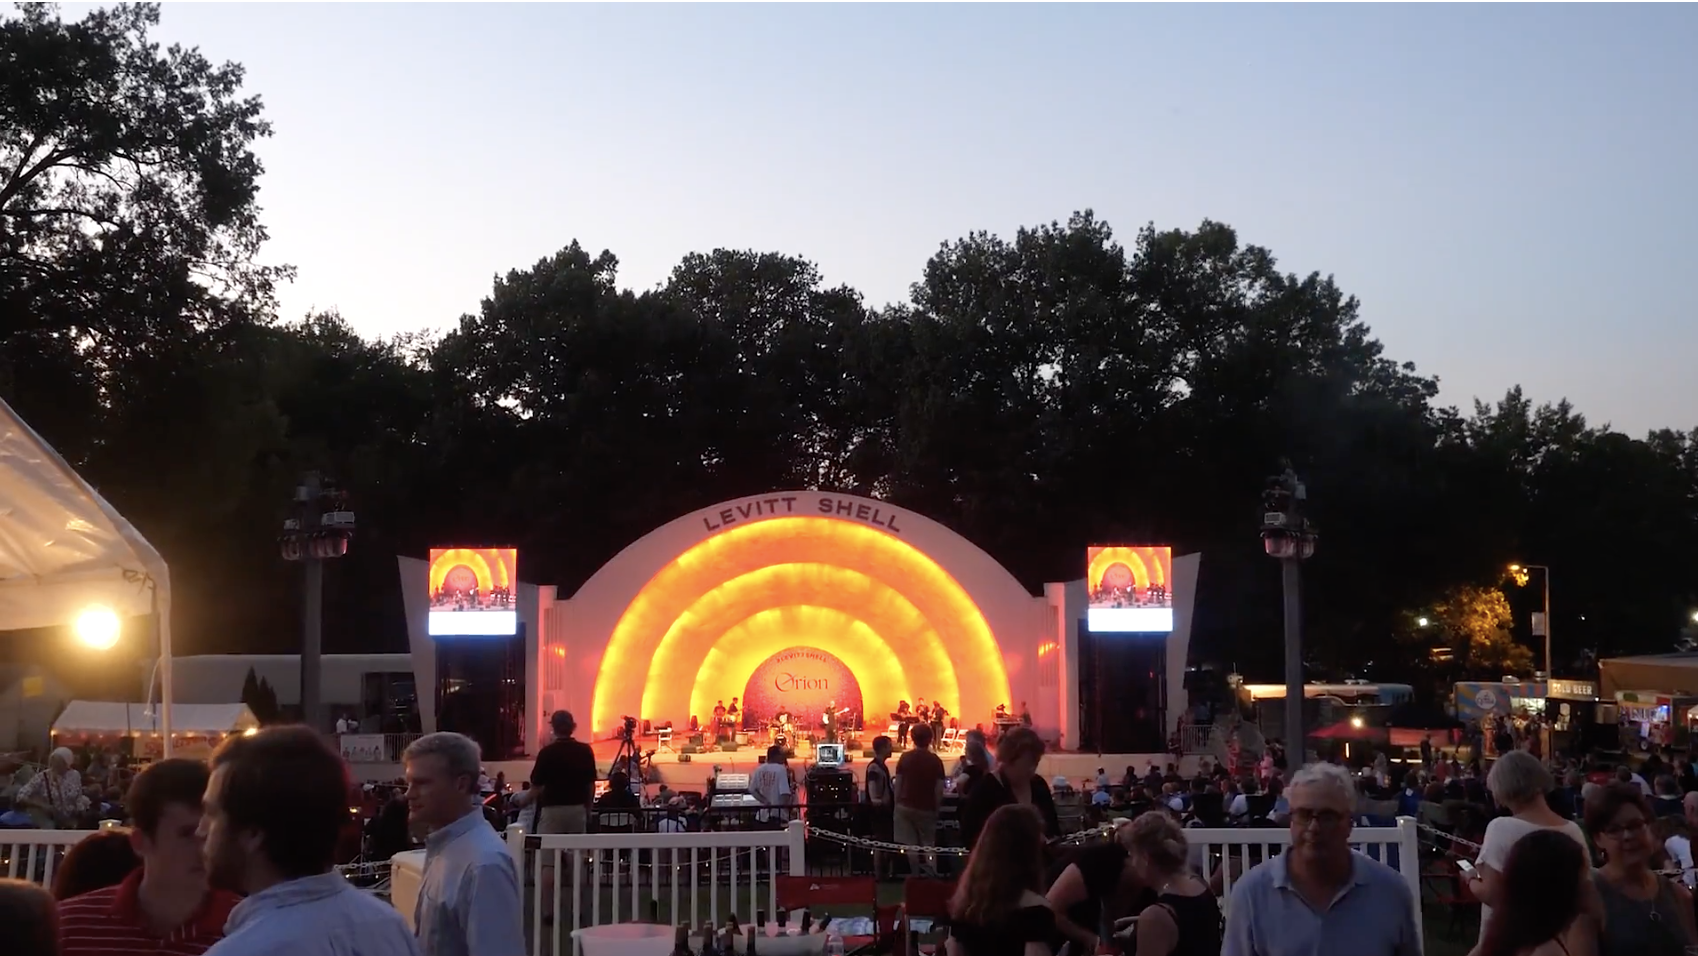 Jazz Concert in Levitt Shell in Overton Park